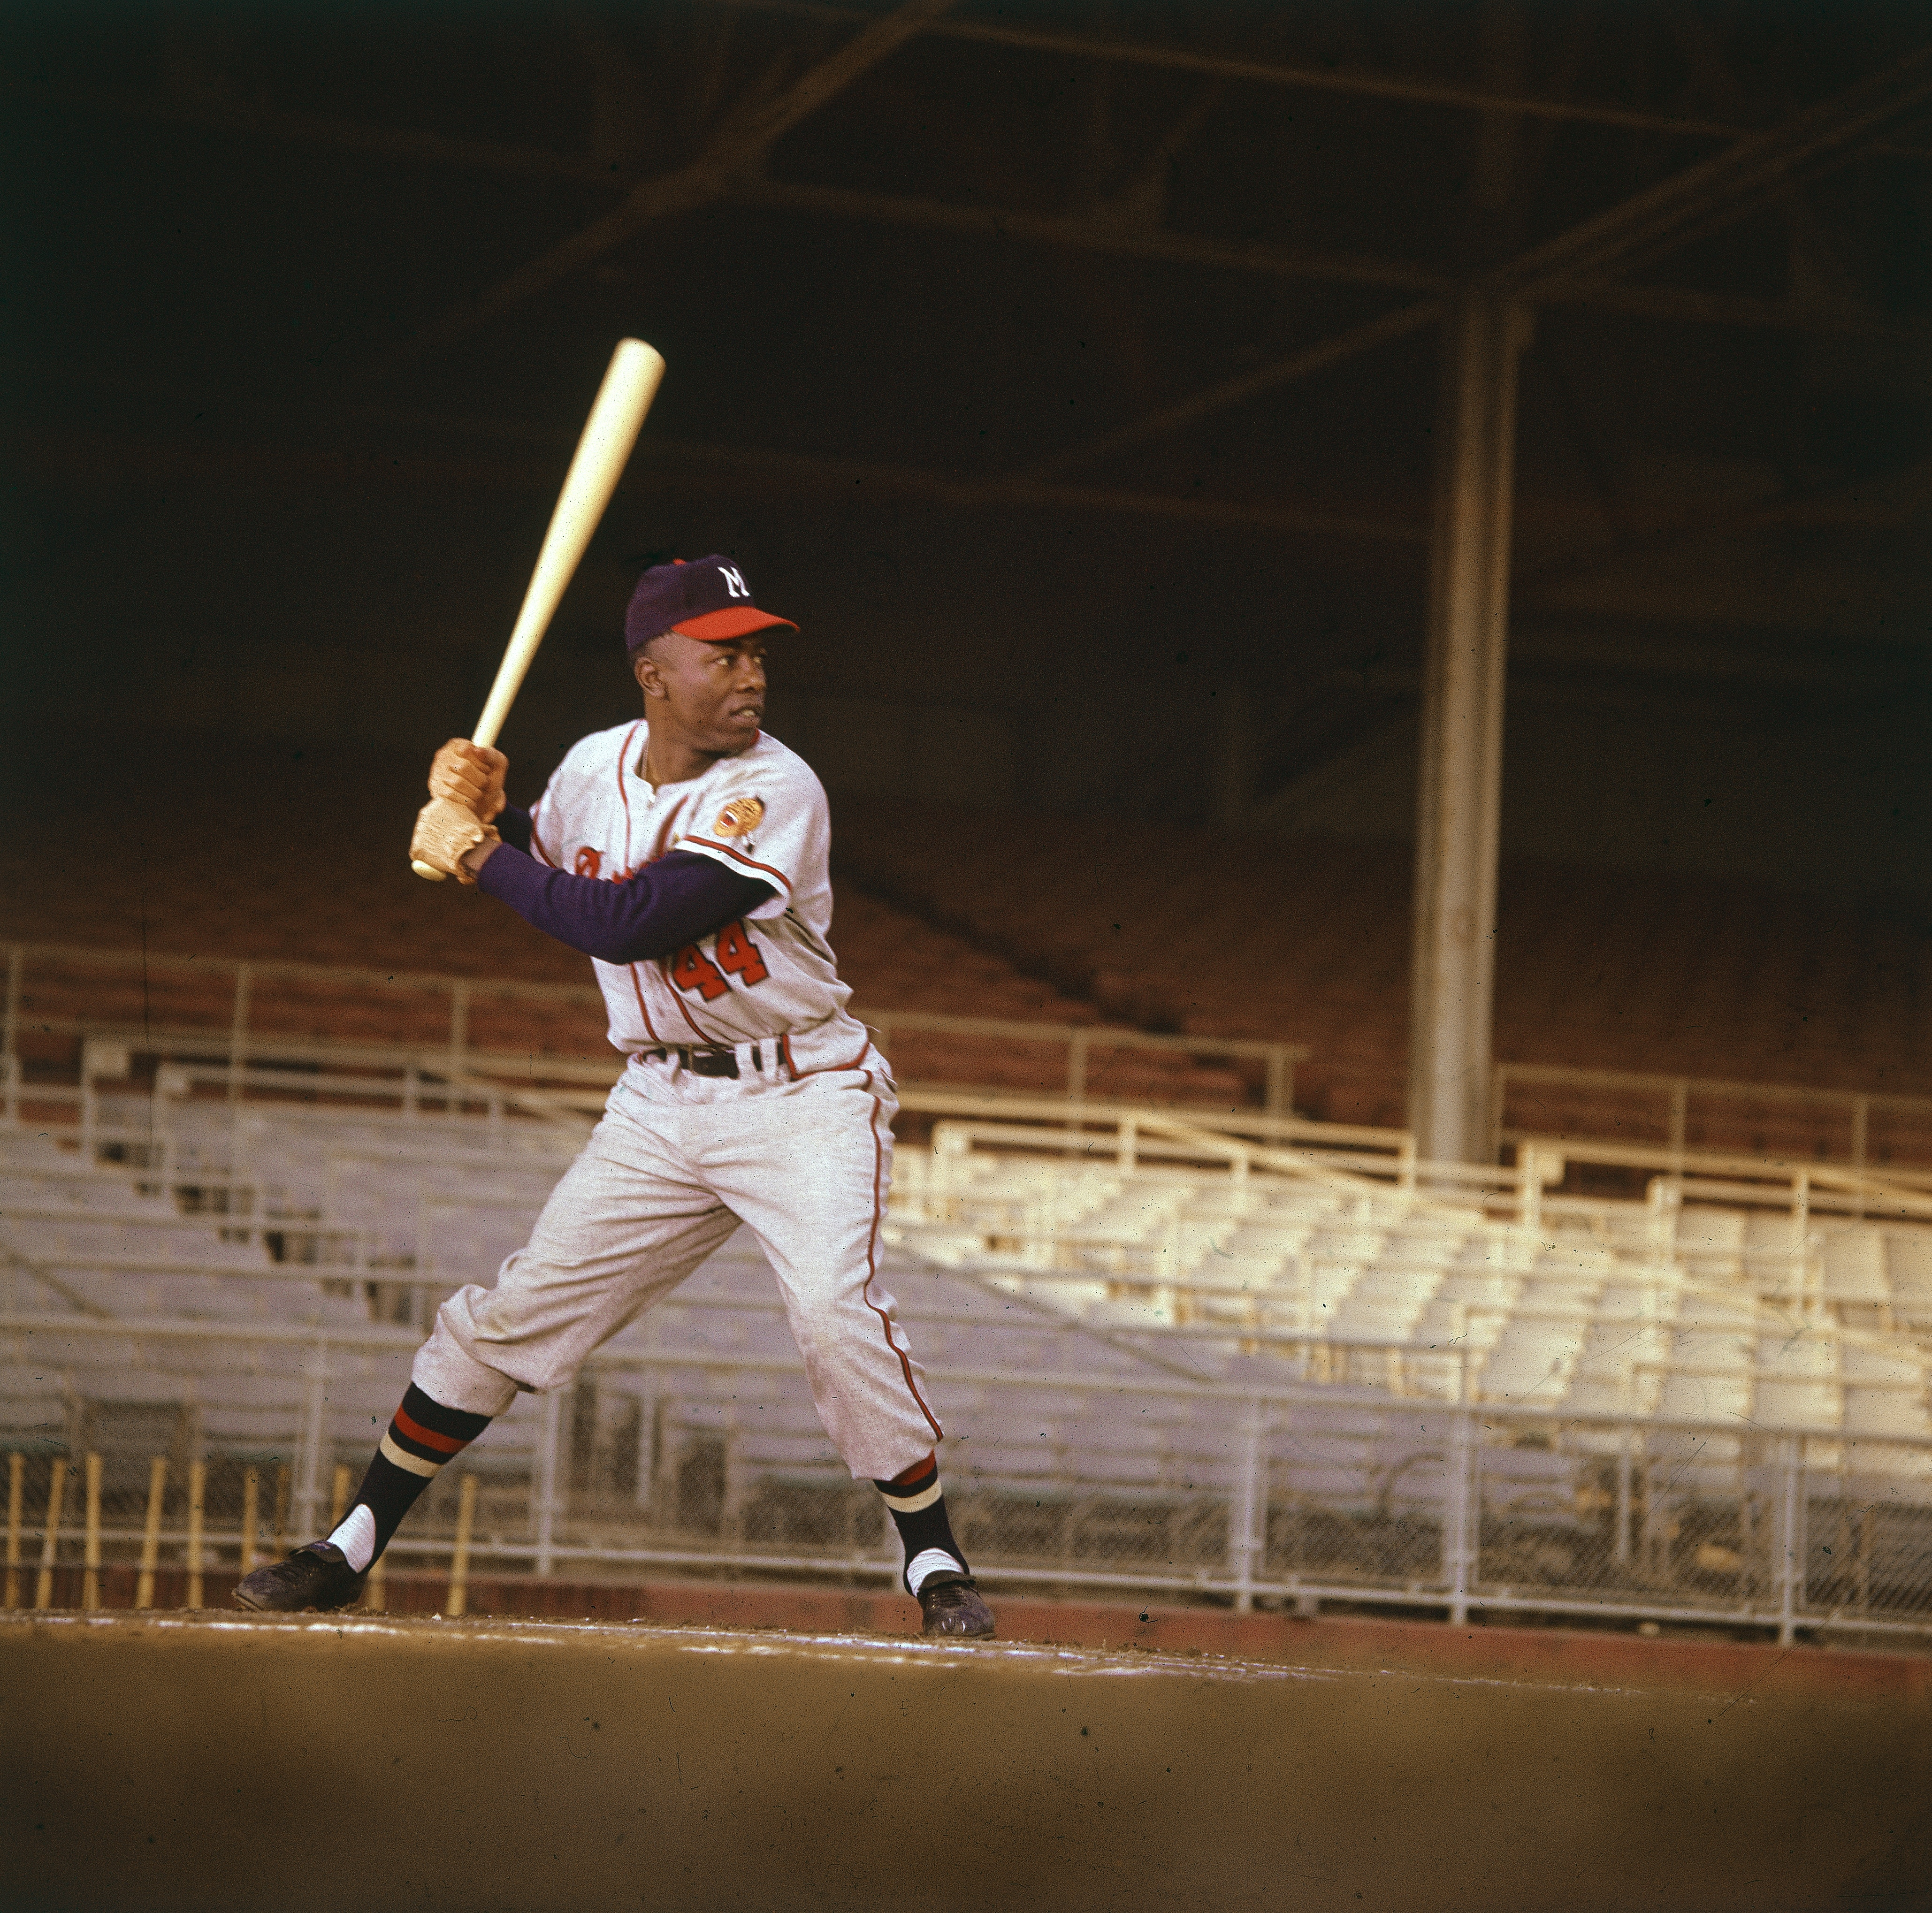 Little League Baseball Batting Tips: Hank Aaron & Catapult Loading System